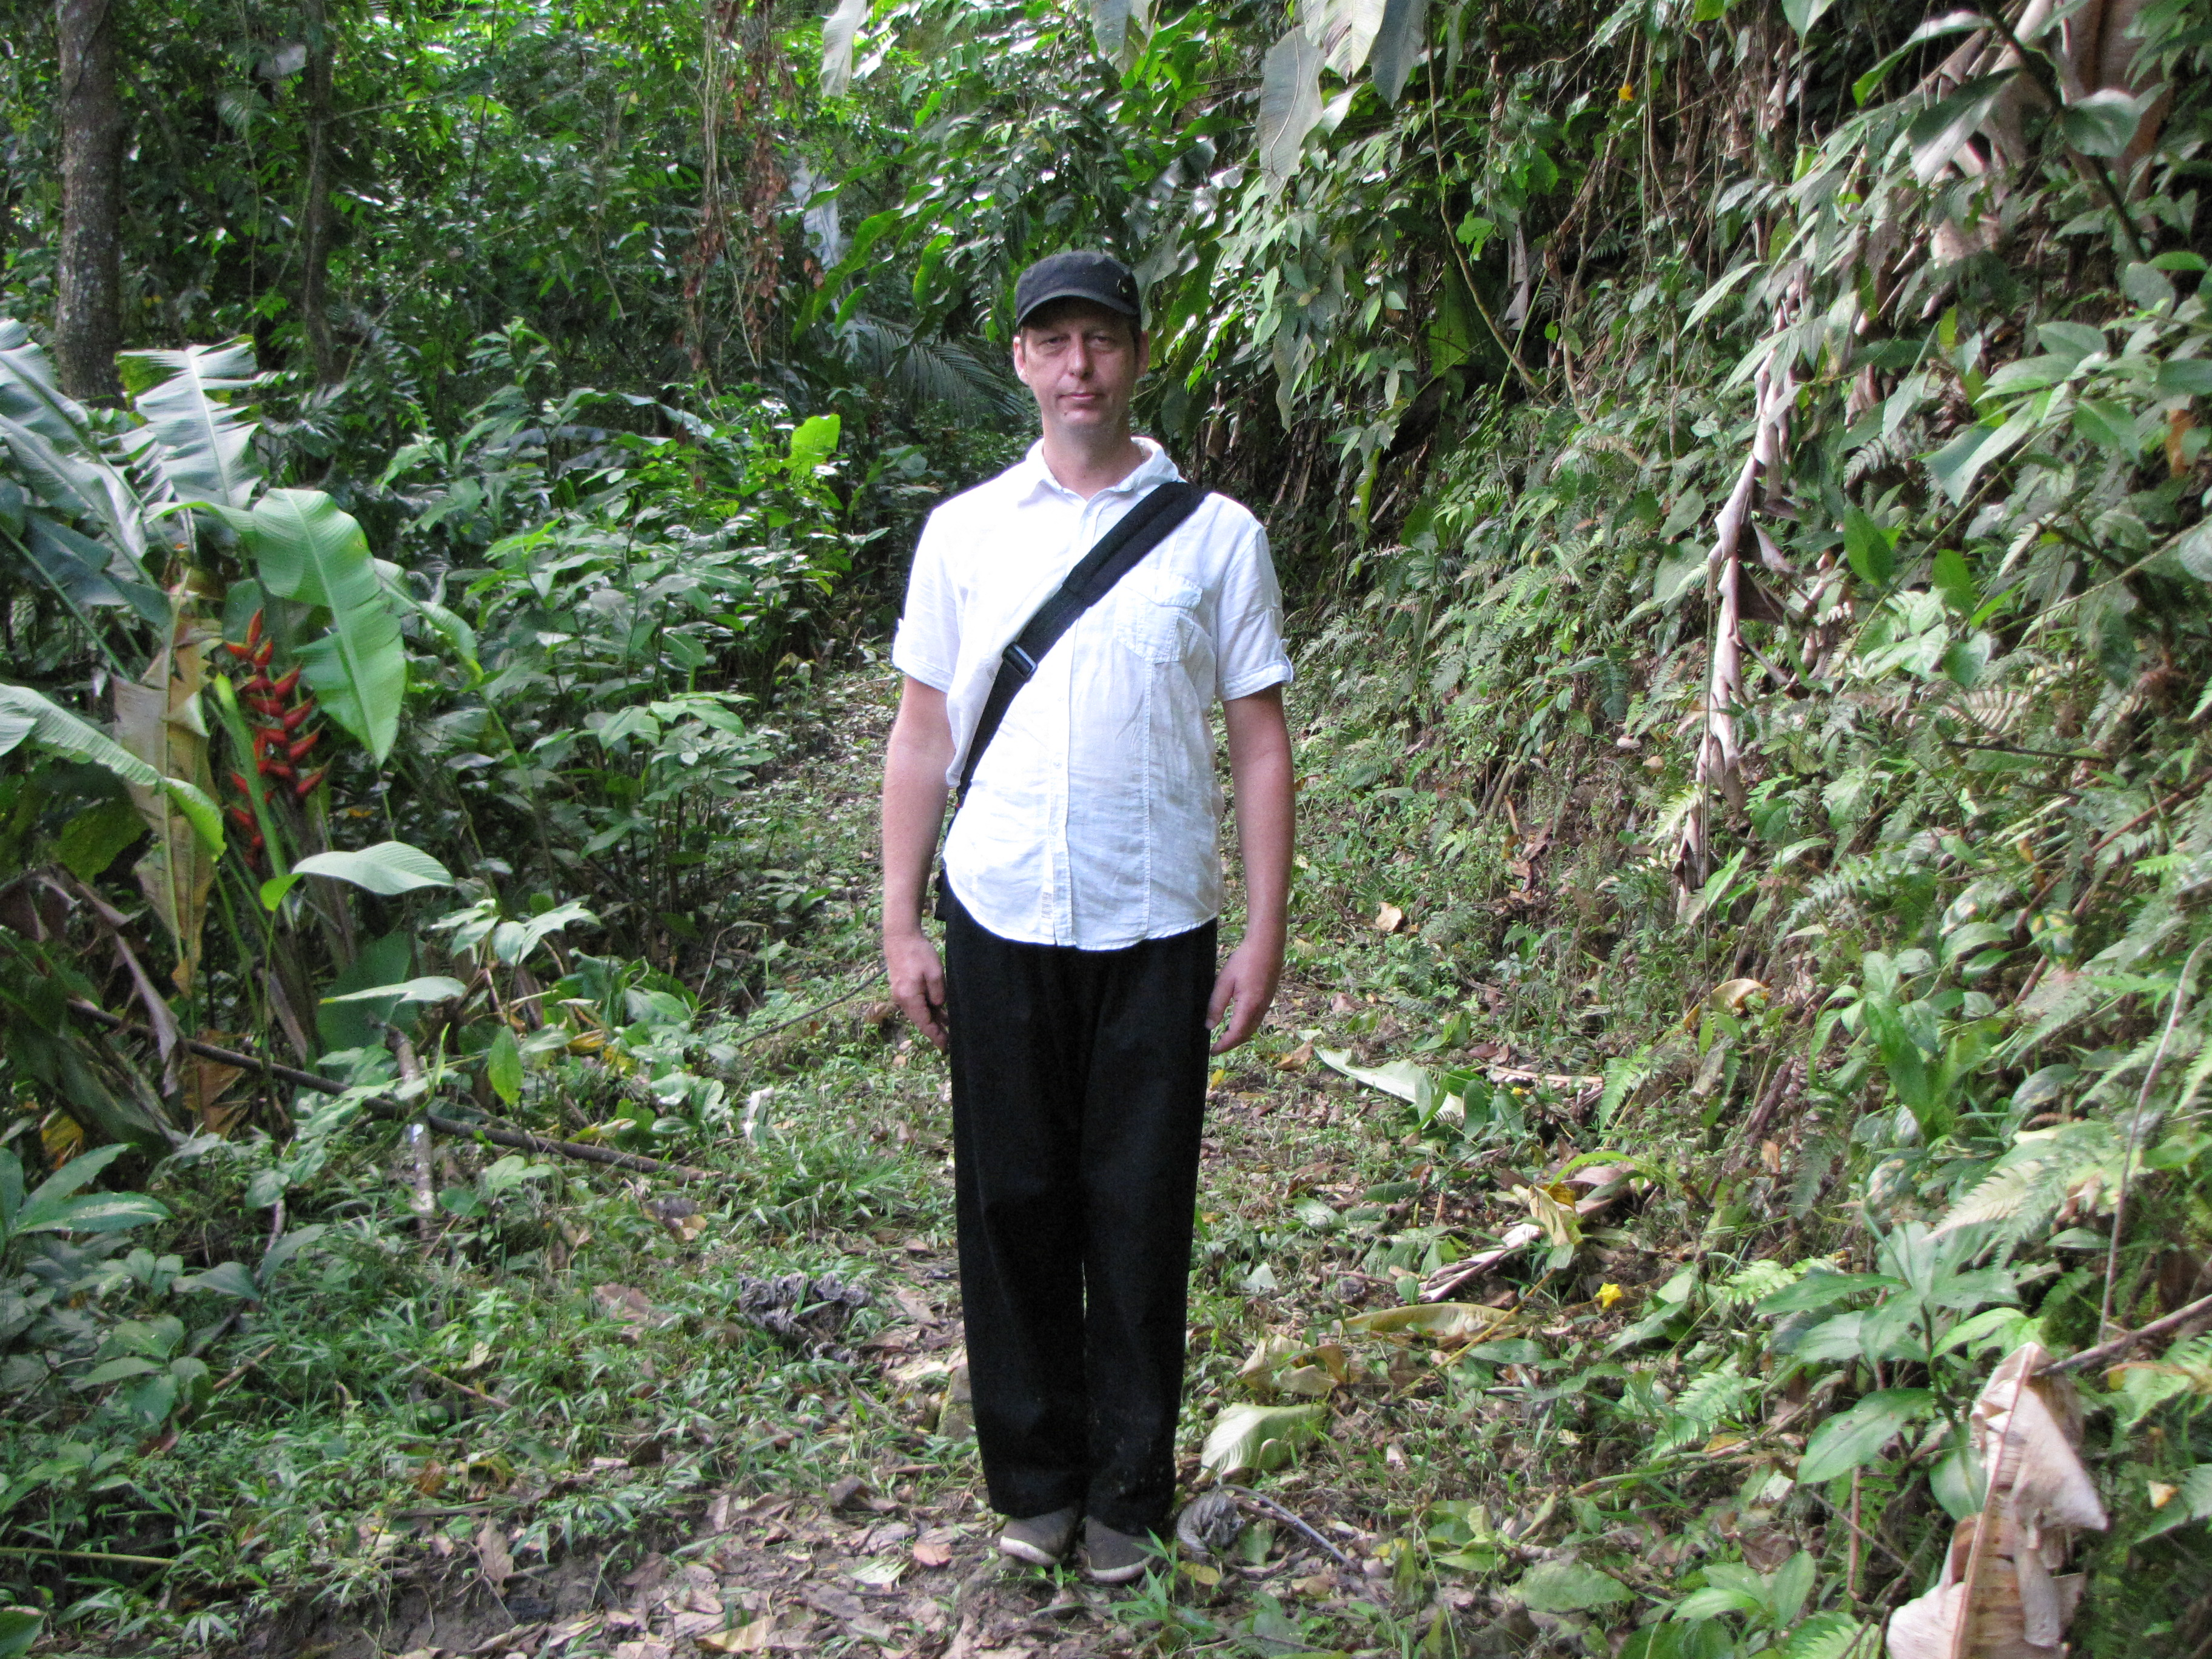 Me impressed about the jungle